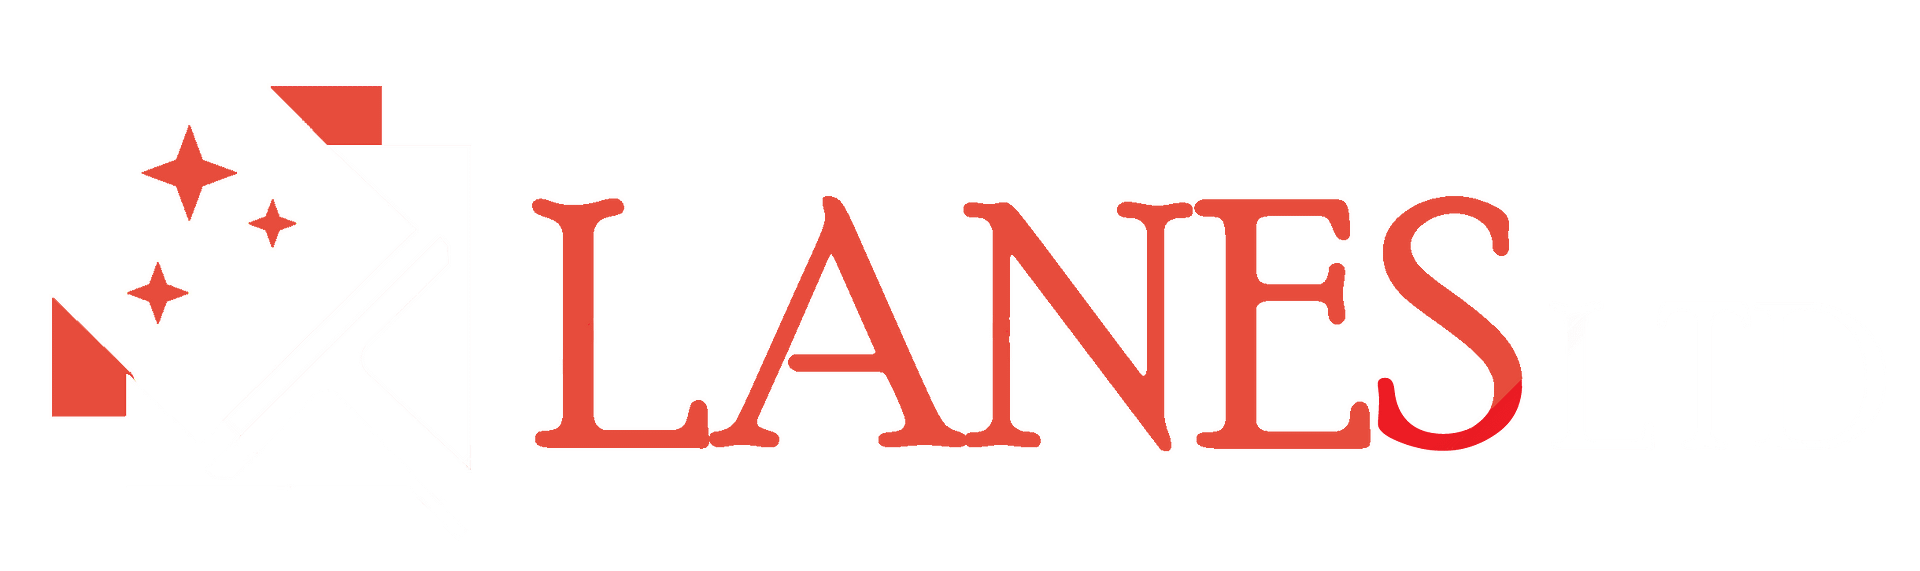 Lanes Ltd. Contract Cleaning Services